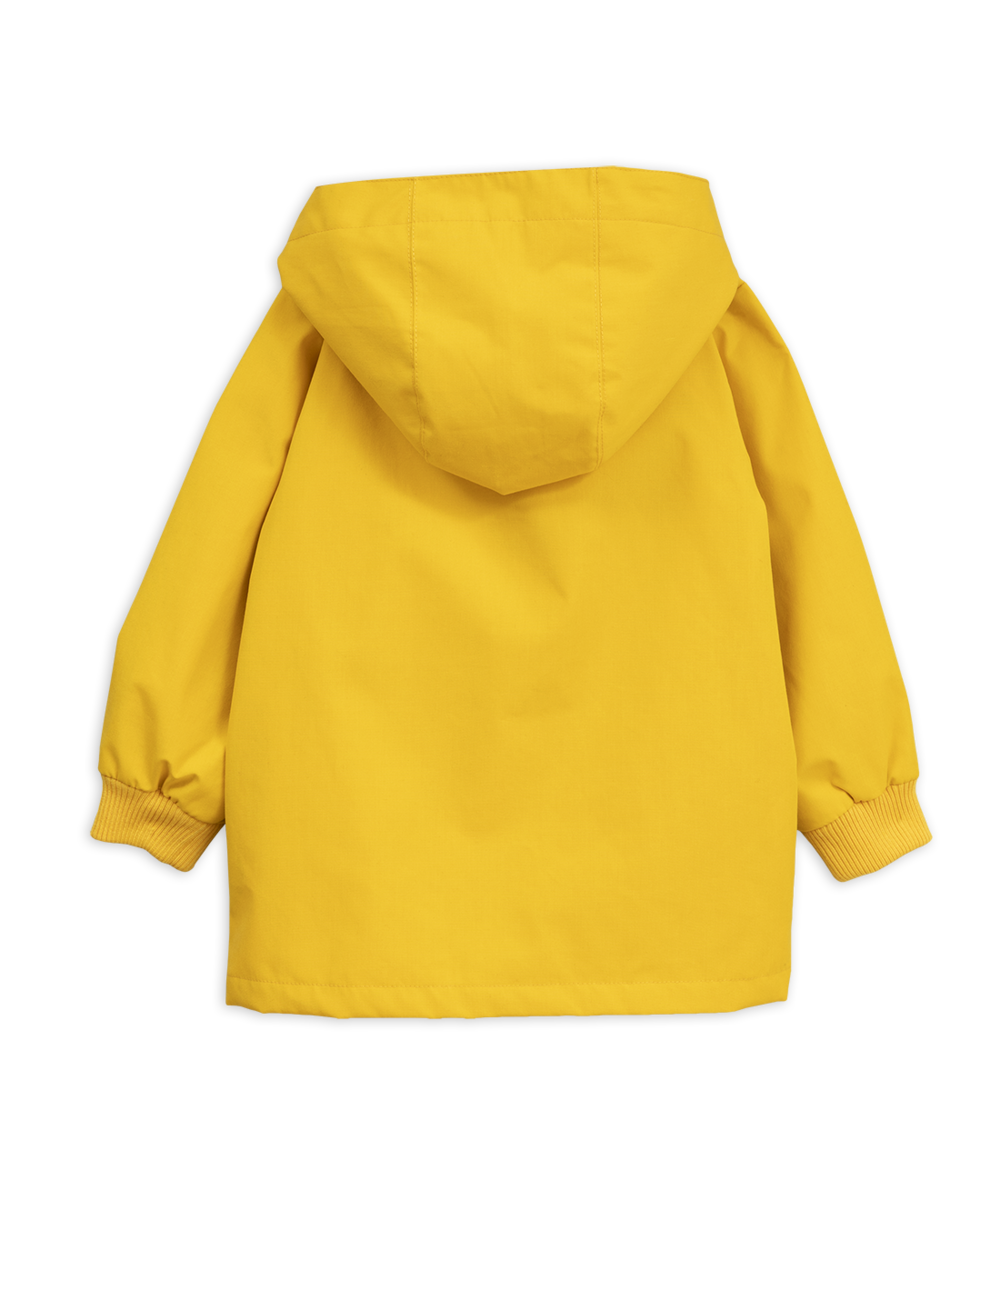 MINI RODINI PICO JACKET, YELLOW